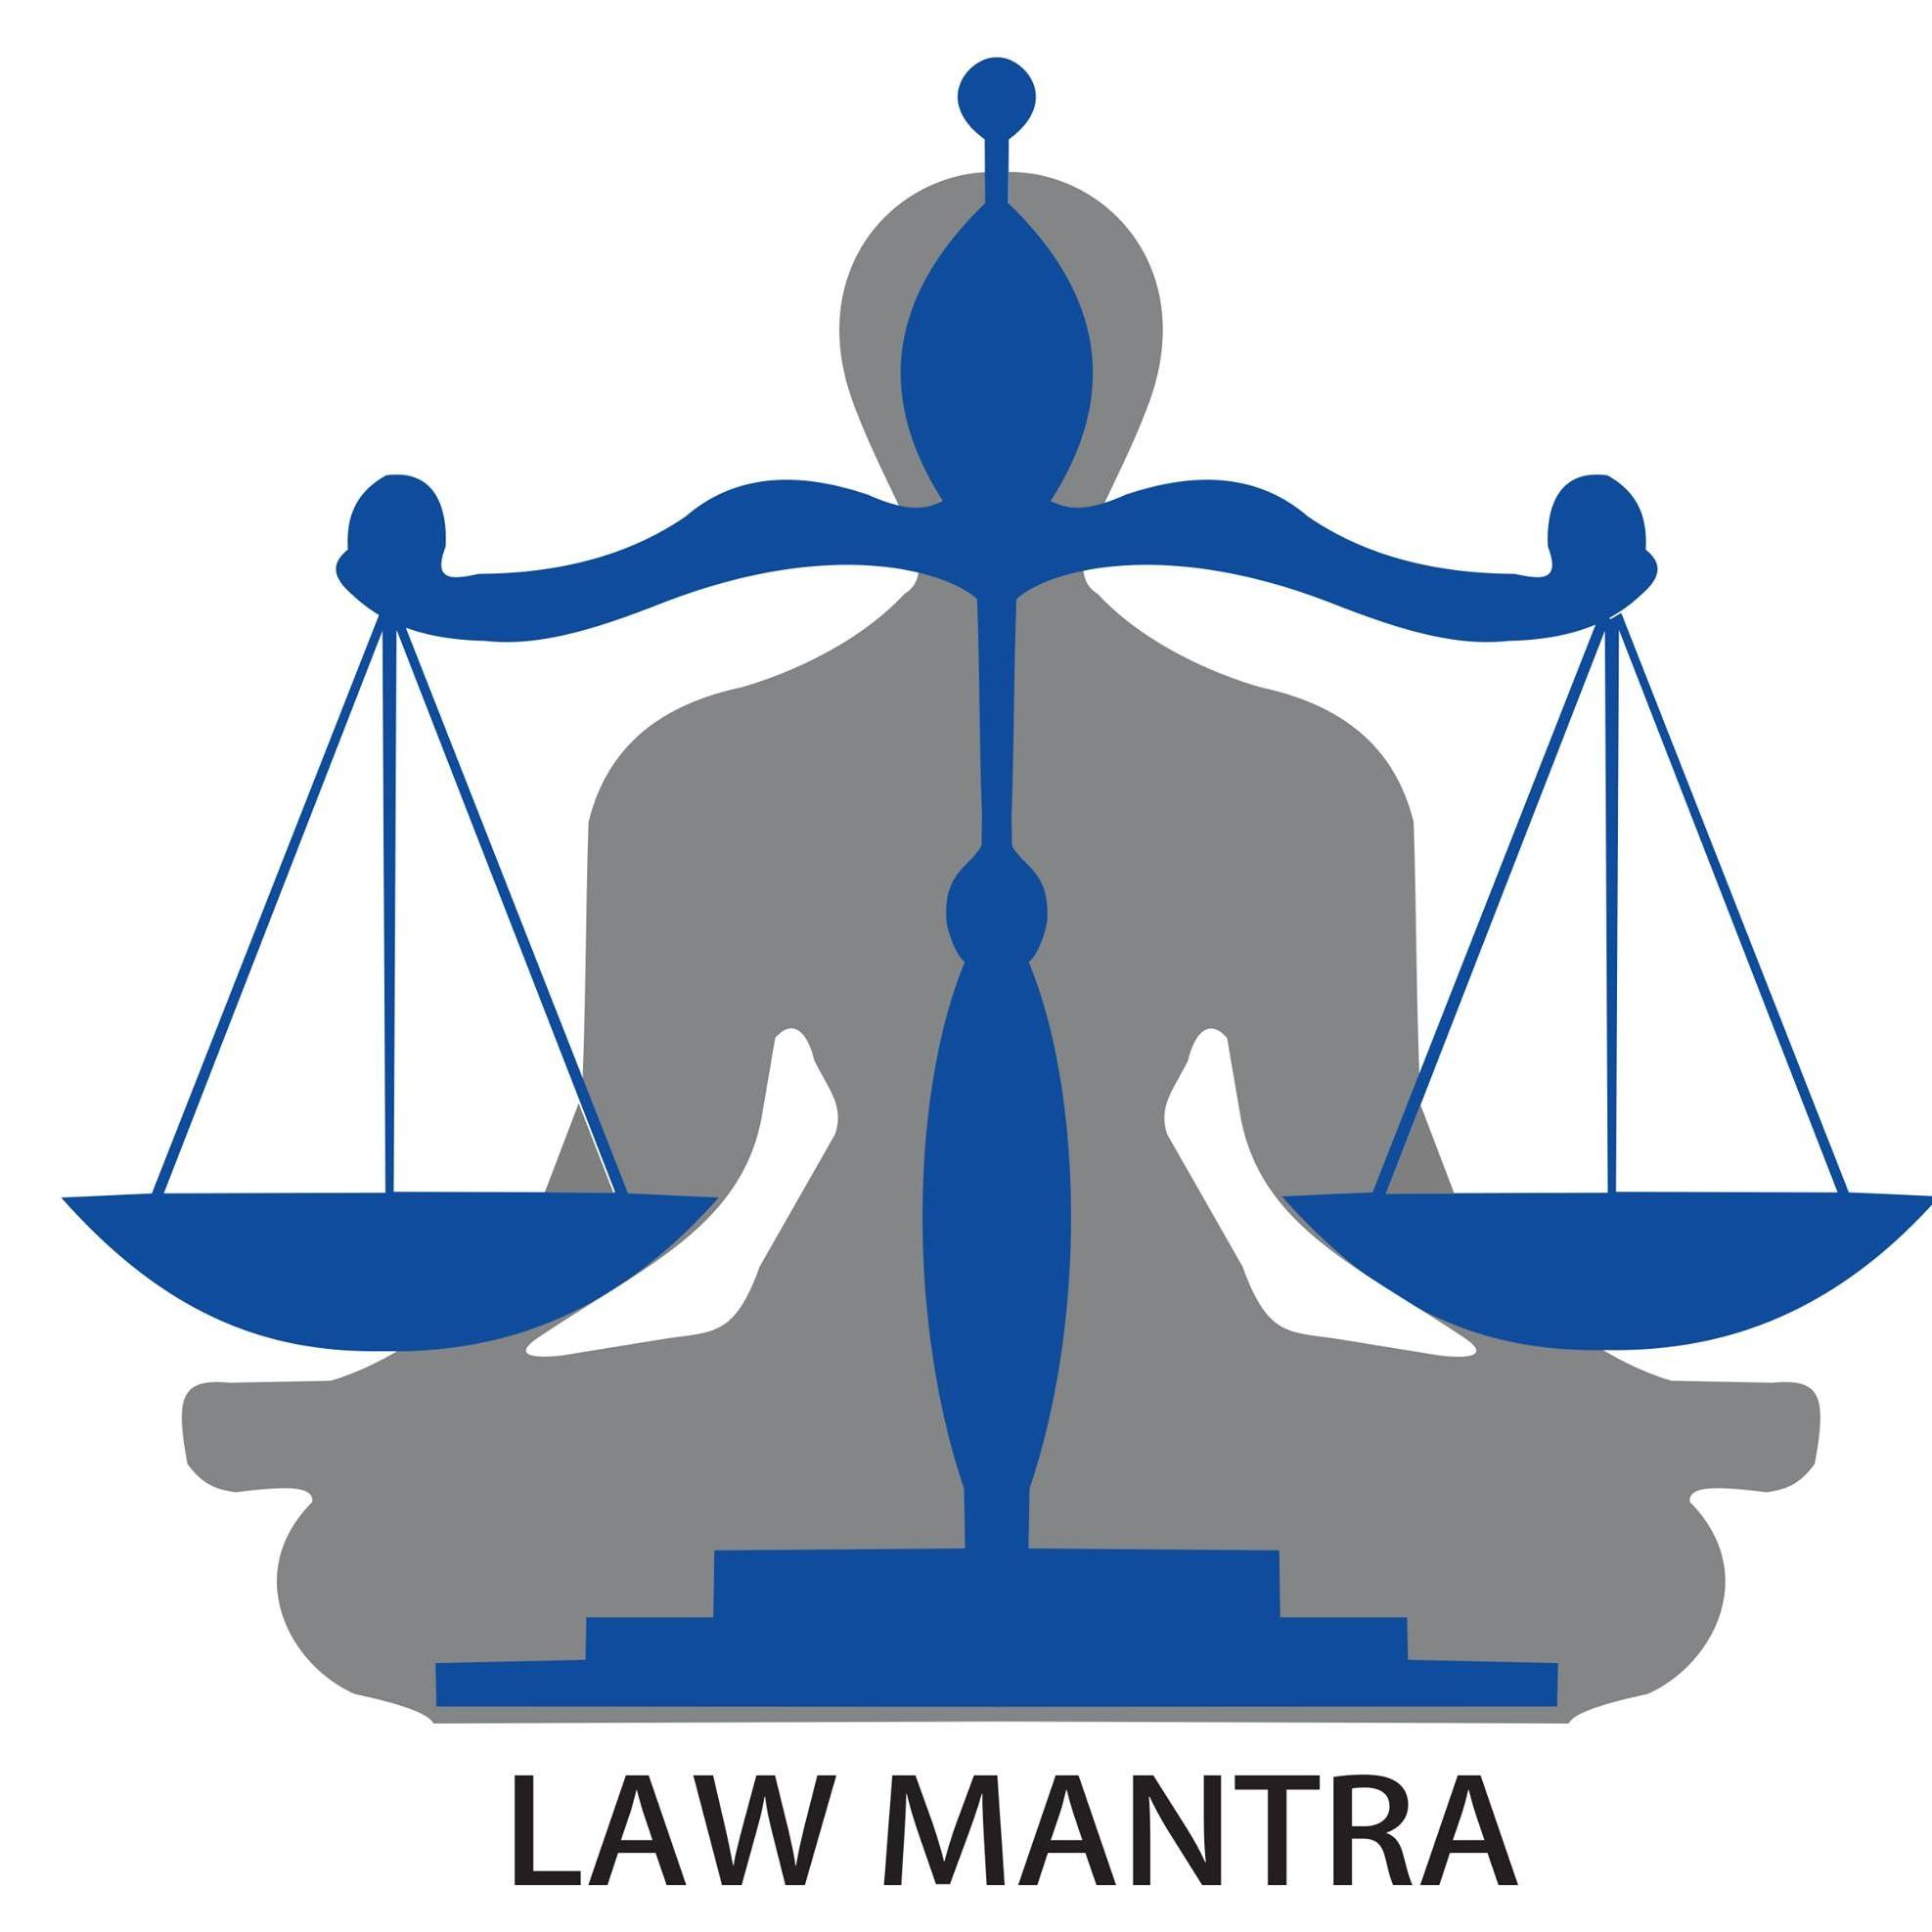 Law Mantra